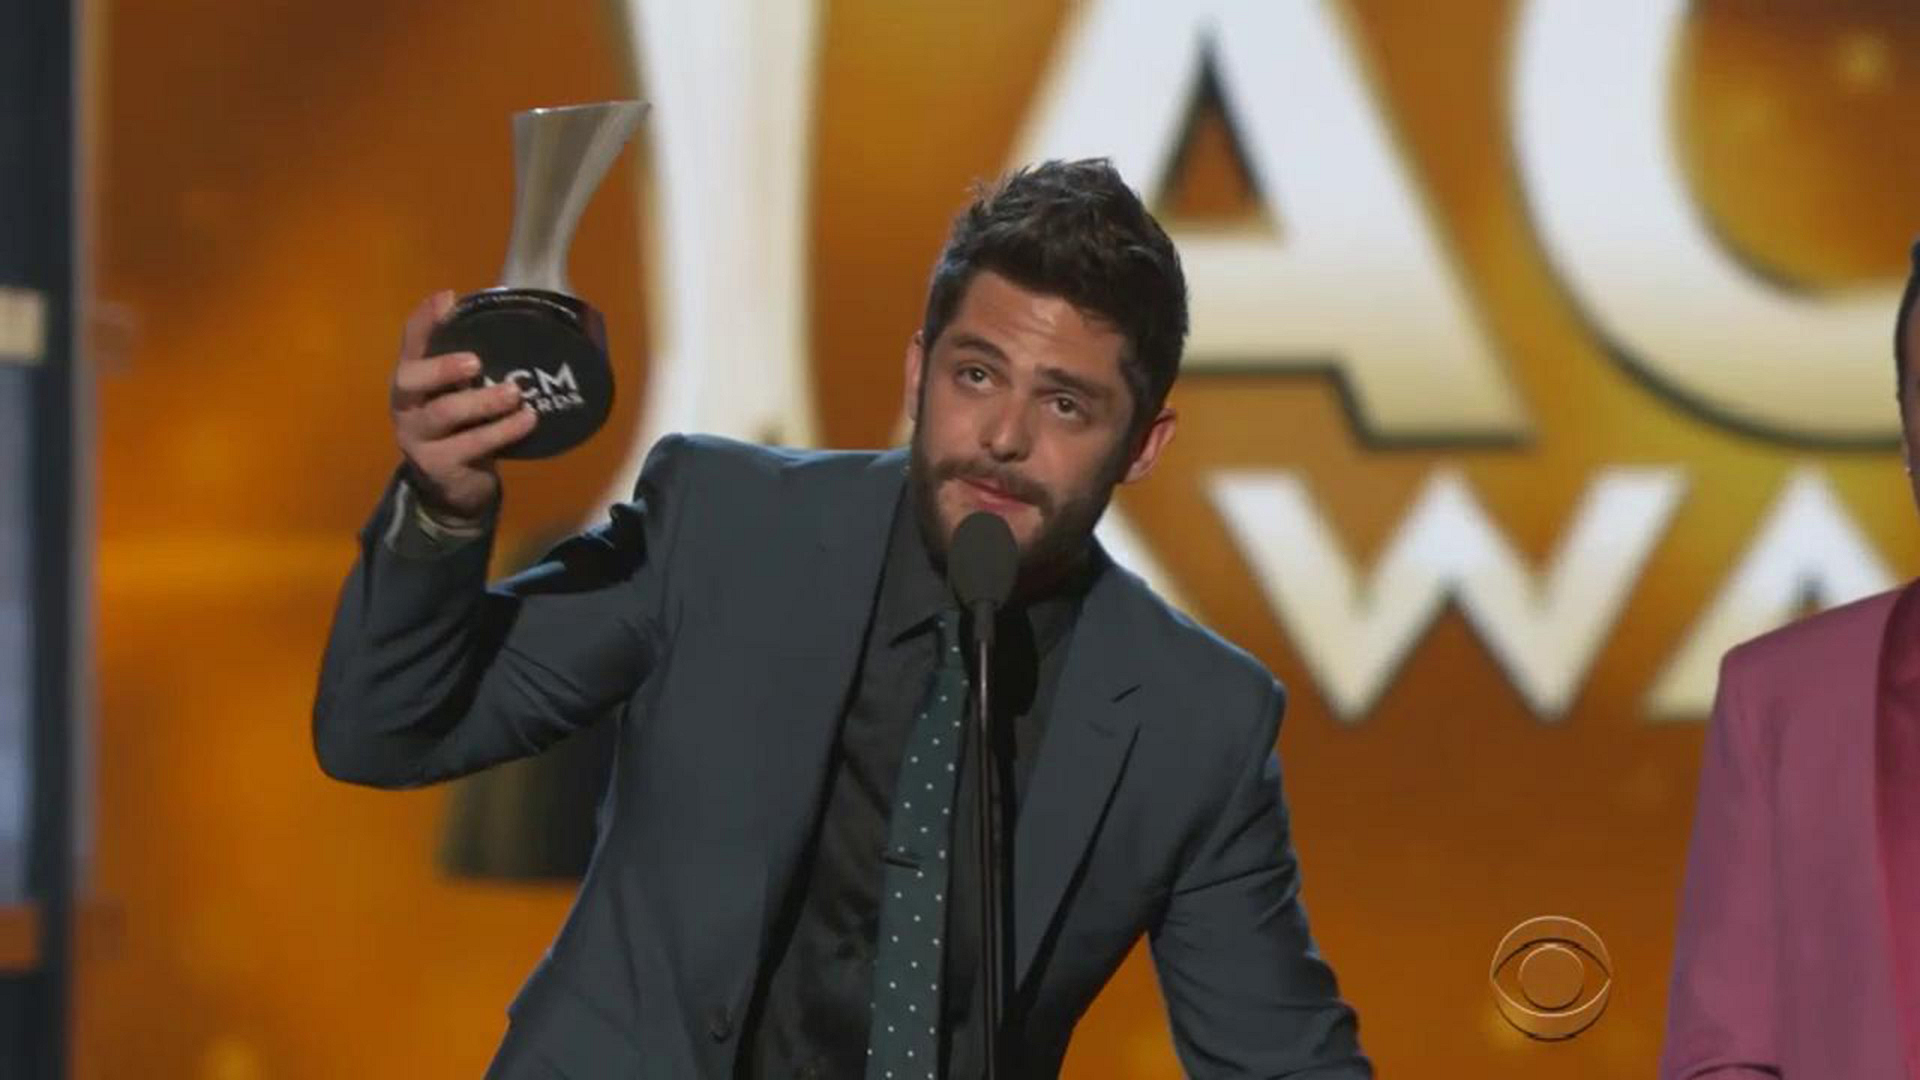 Thomas Rhett: Single Record Of The Year